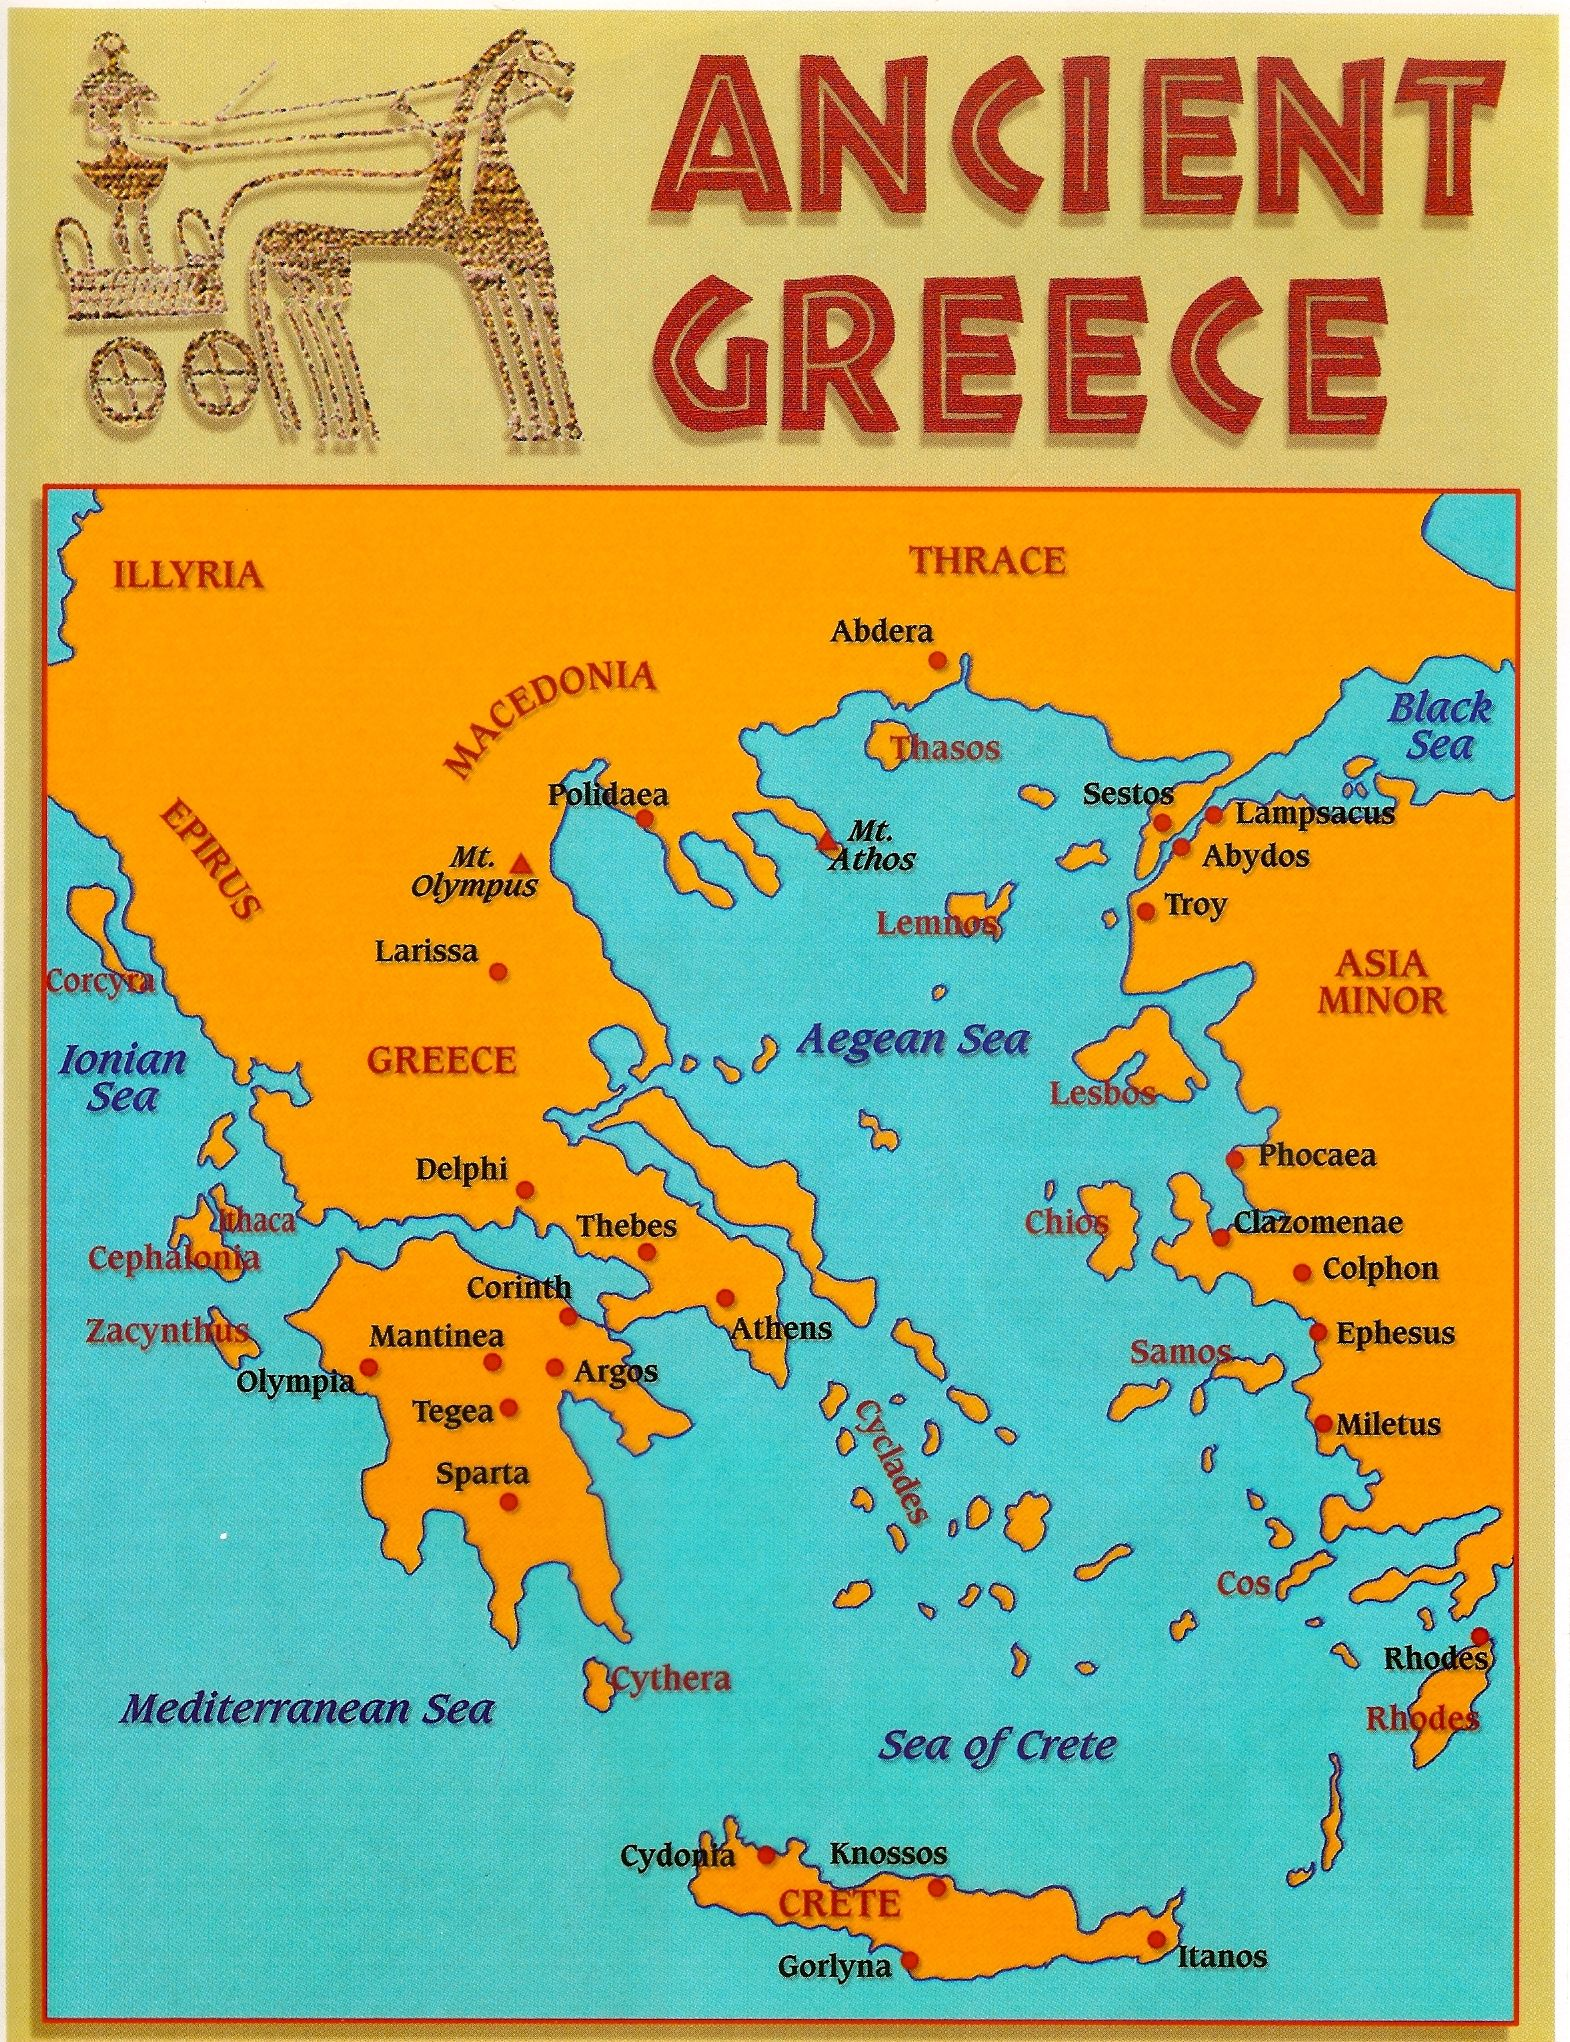 Modern Architecture Vs Ancient Greek Architecture ancient greece map vs modern greece map - http://www.epictourist